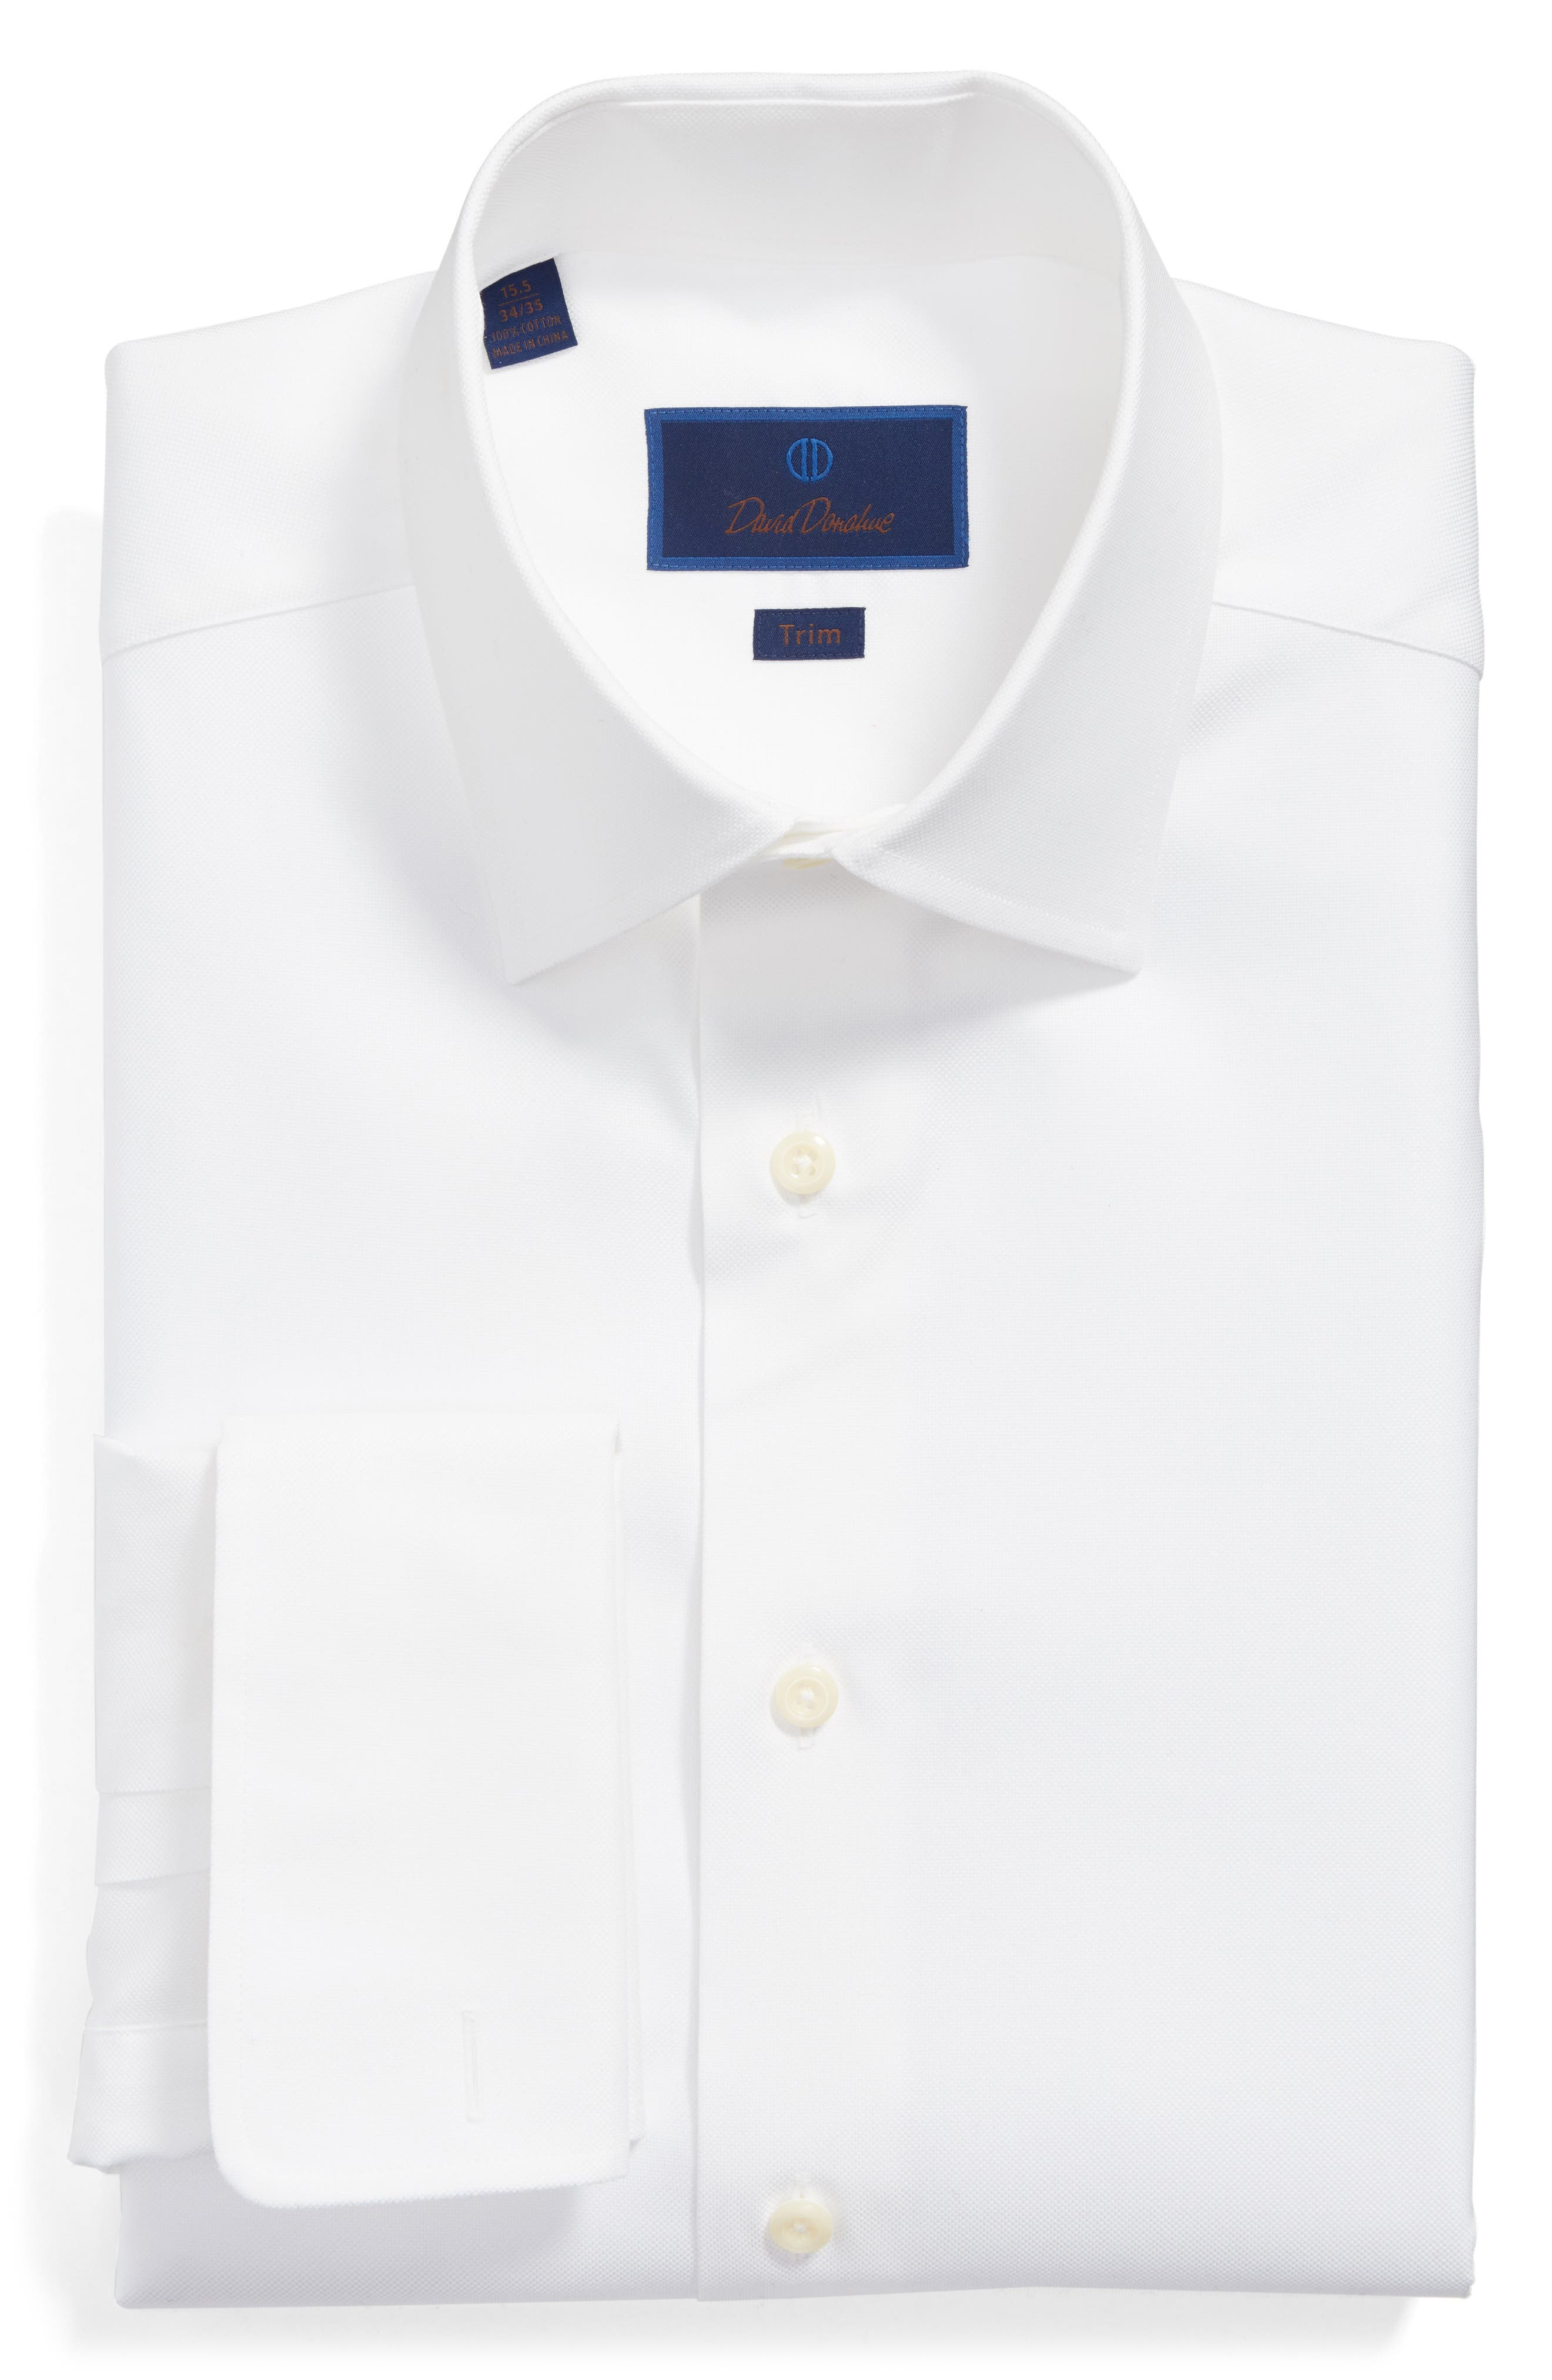 Mens French Cuff Dress Shirts Nordstrom